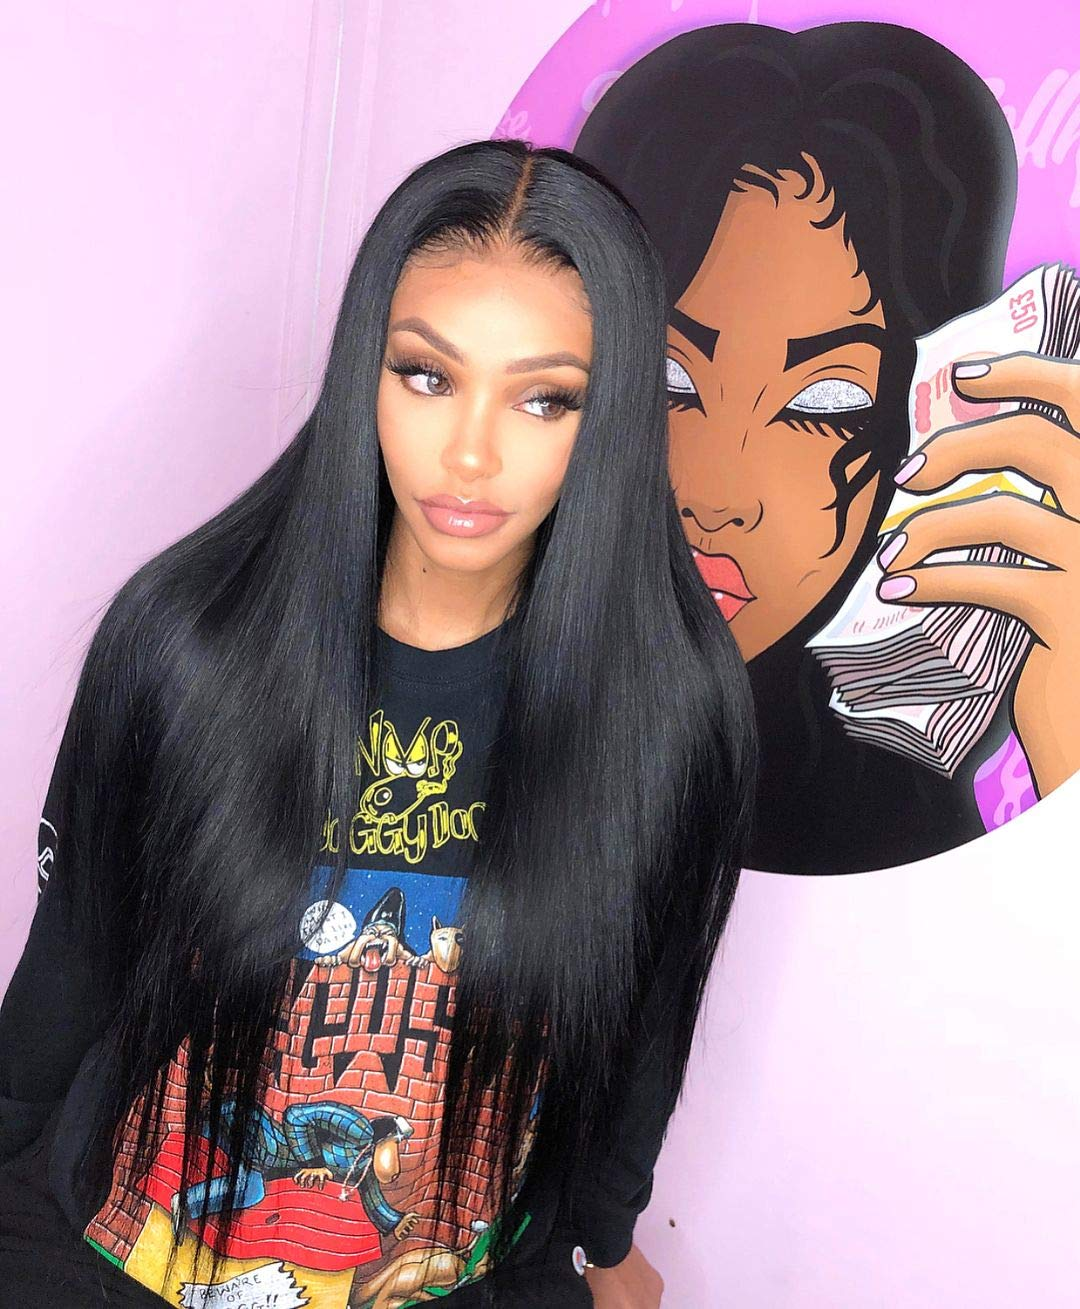 Eseewigs 260 Density Lace Front Wig Human Hair With Baby Hair Pre Plucked Remy Brazilian Straight Lace Wigs For Black Women 13x4